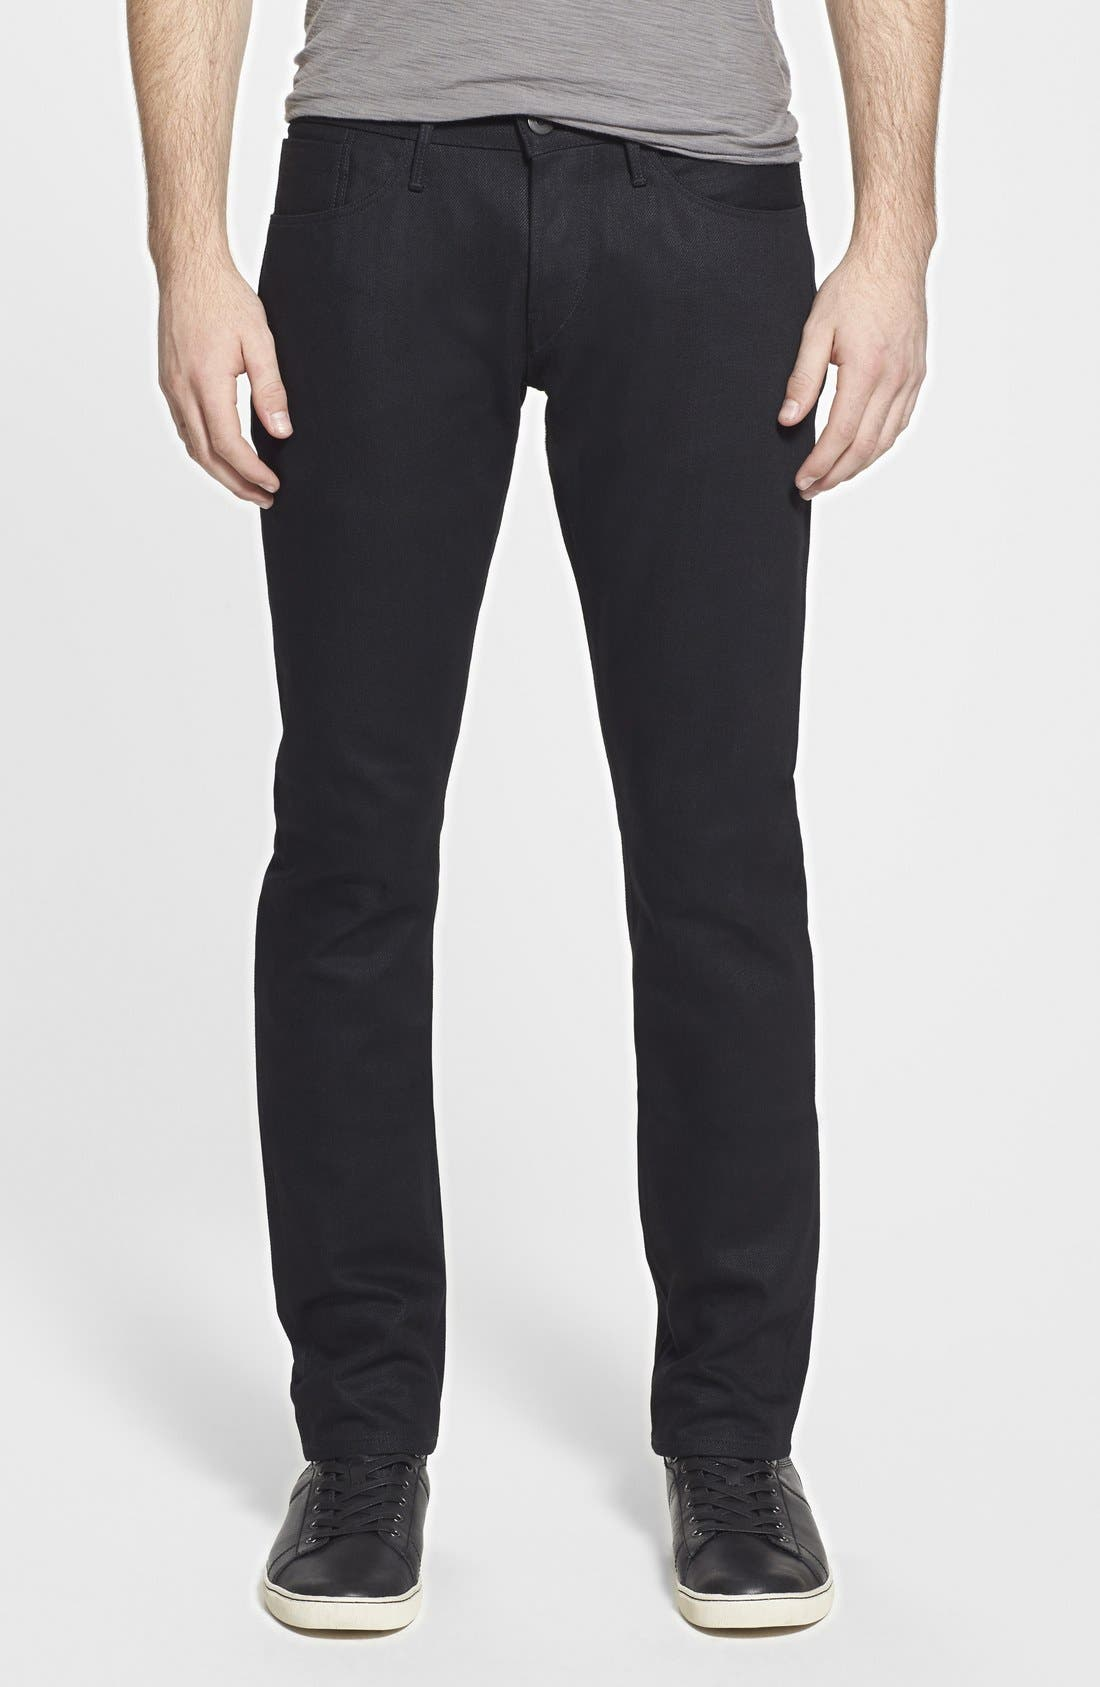 3X1 NYC 'M5' Skinny Fit Selvedge Jeans